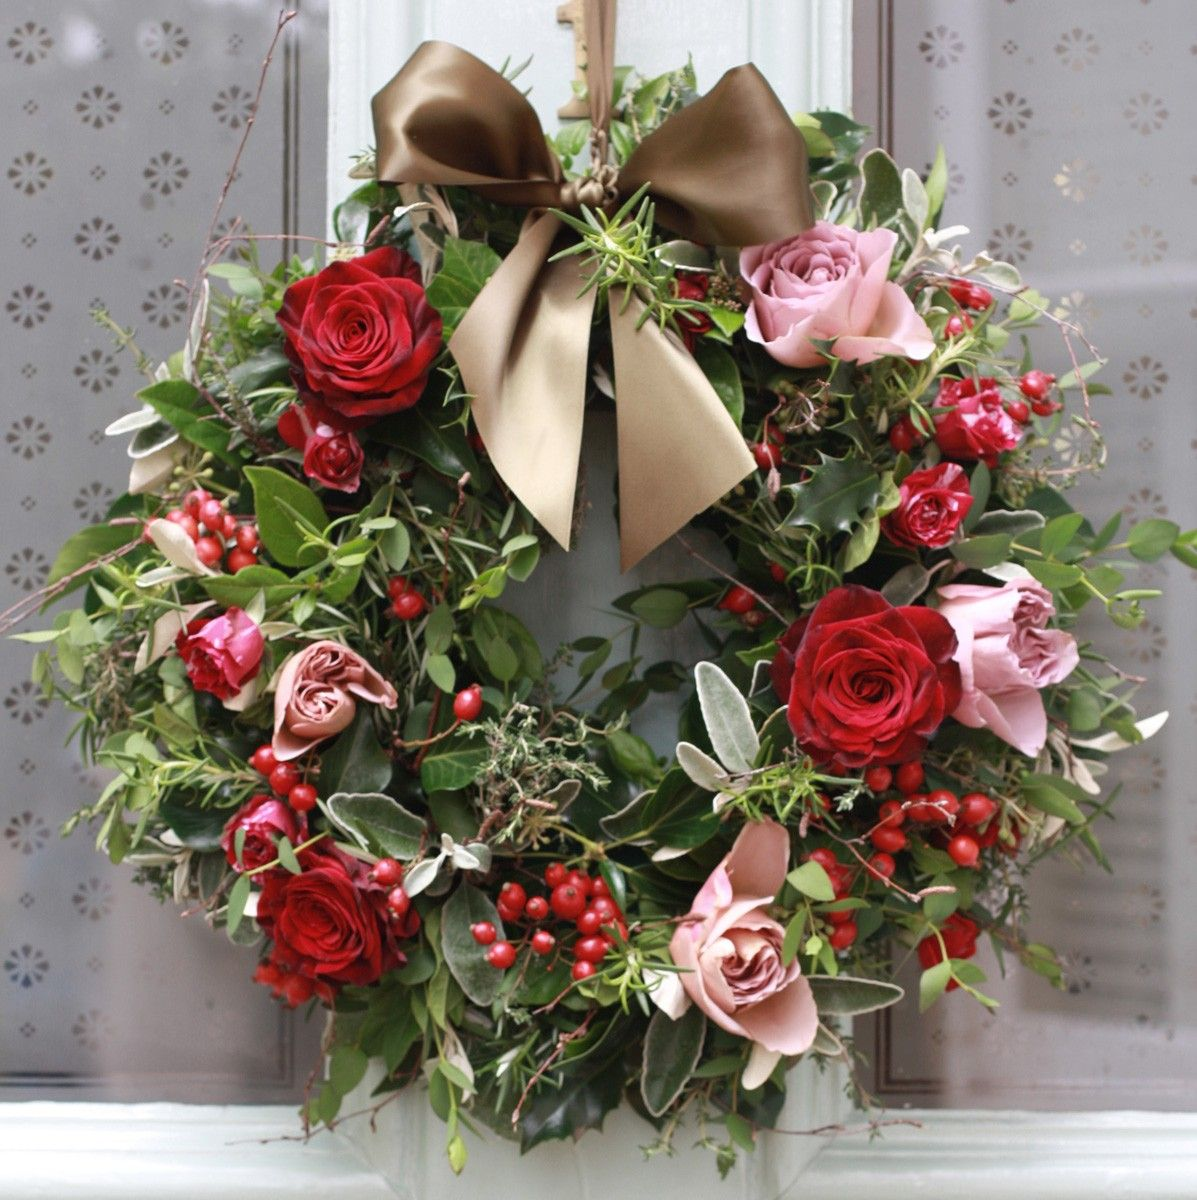 The Real Flower Company Christmas Luxury Antique and Red